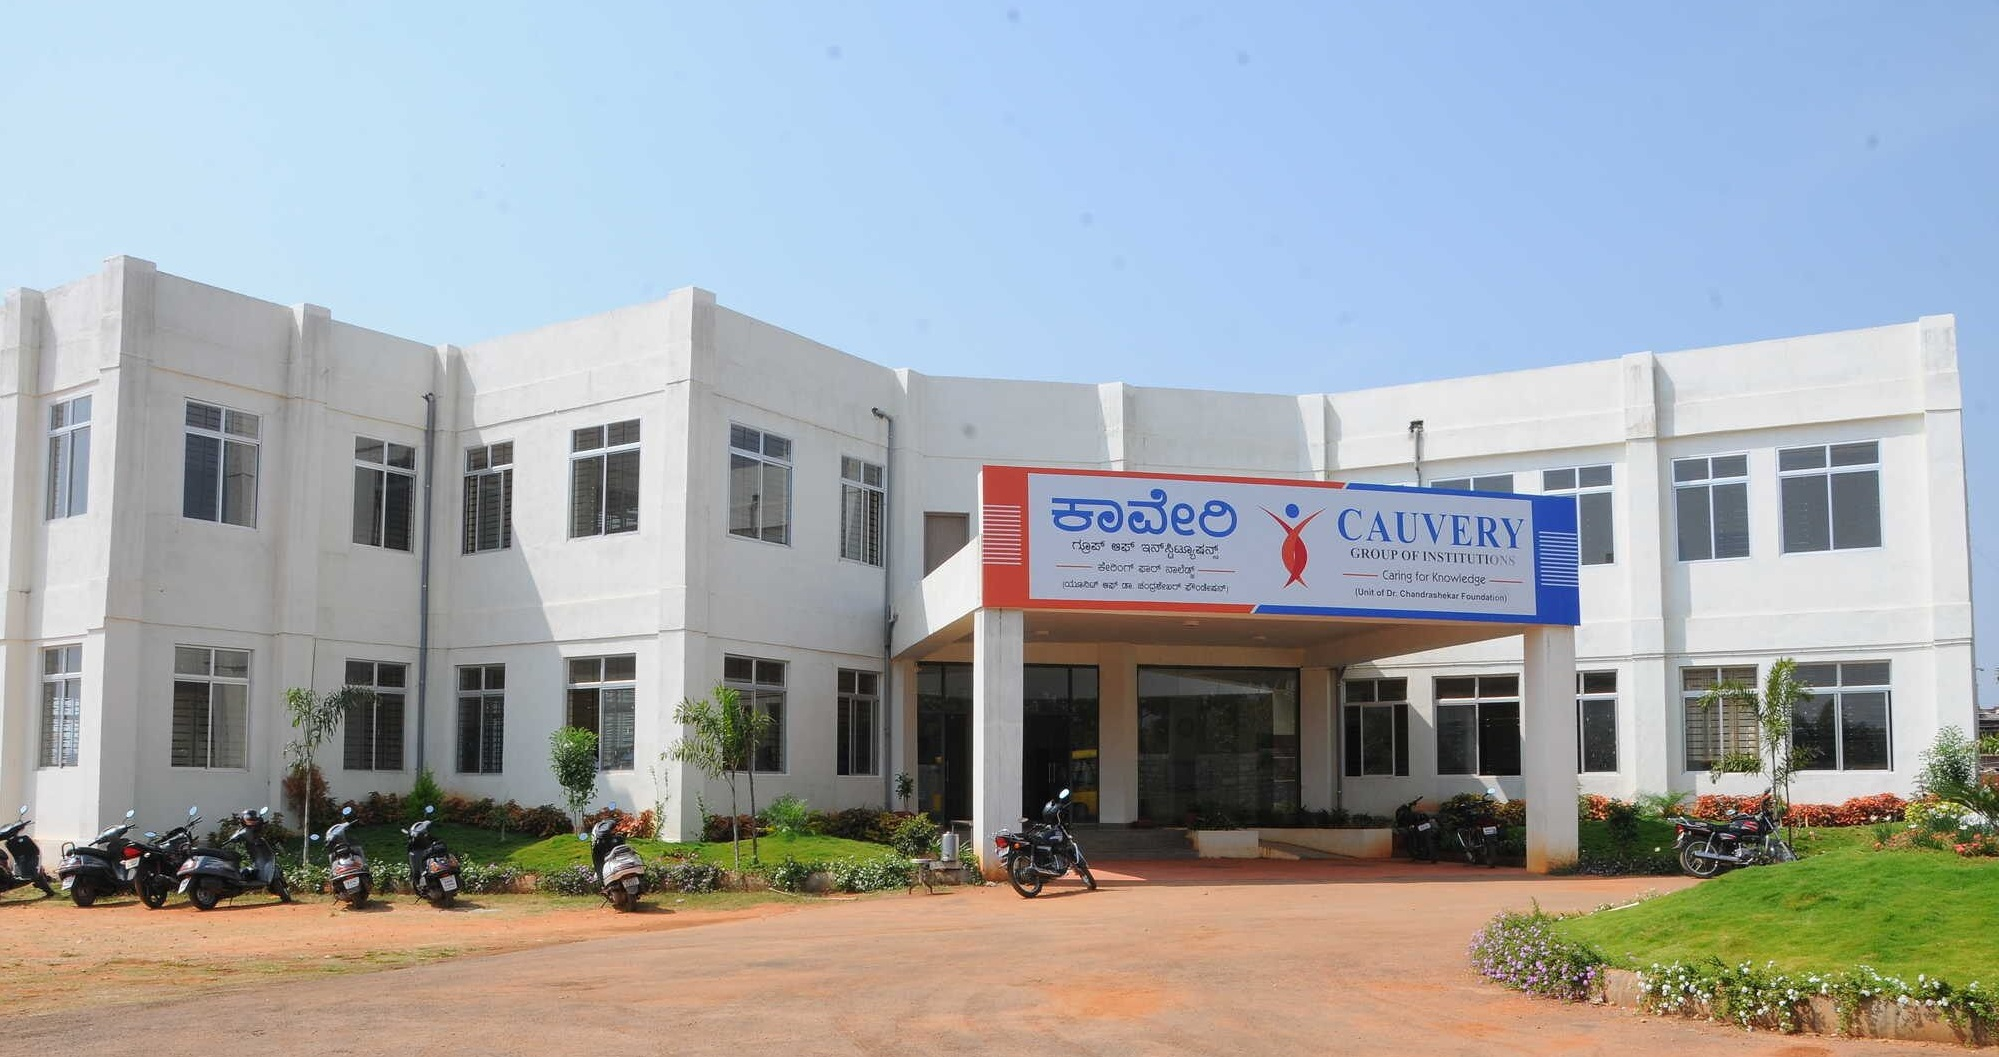 Cauvery College of Physiotherapy, Mysore